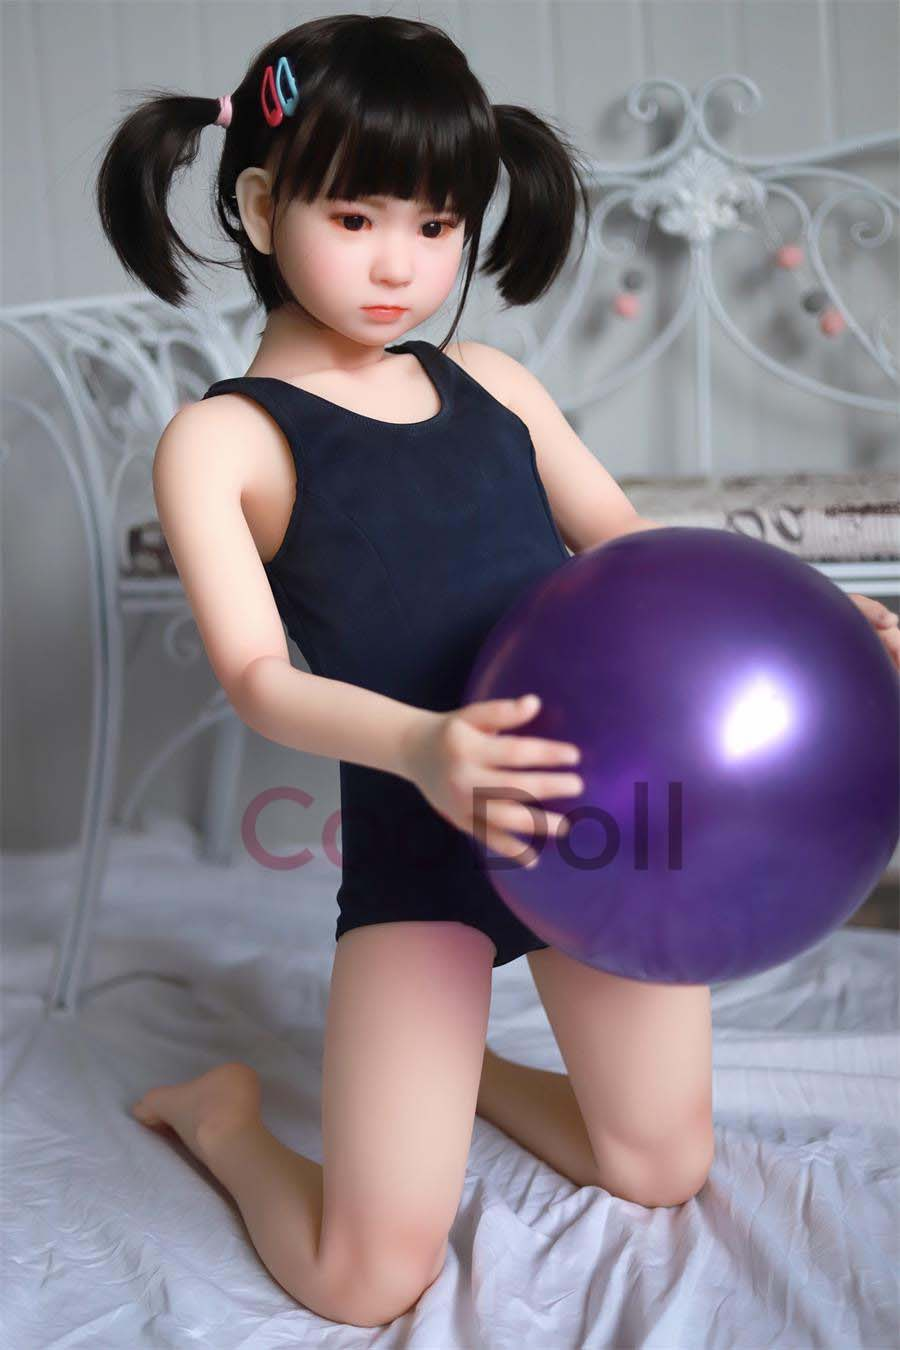 Tiny Sex Doll Japanese Young Girl A Cup Love Doll 115cm